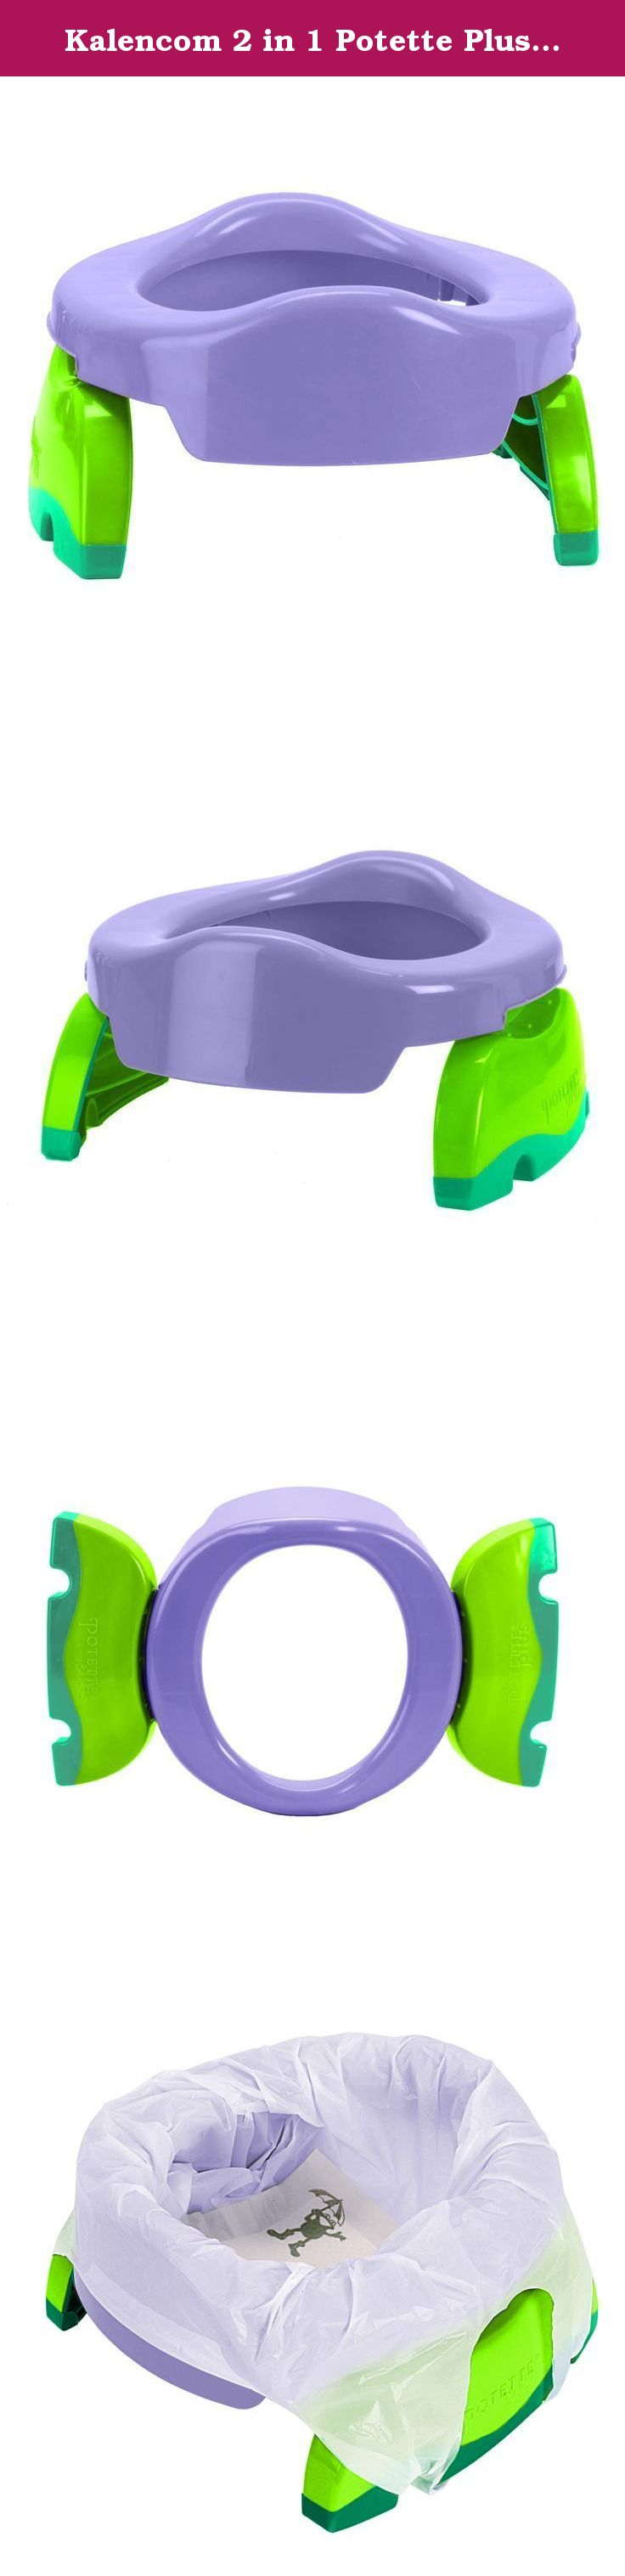 Kalencom 2 In 1 Potette Plus Portable Potty Toilet Training Seat Lilac With 30 Potty Liners Set 2 In 1 Potet Potty Toilet Portable Potty Toilet Training Seat